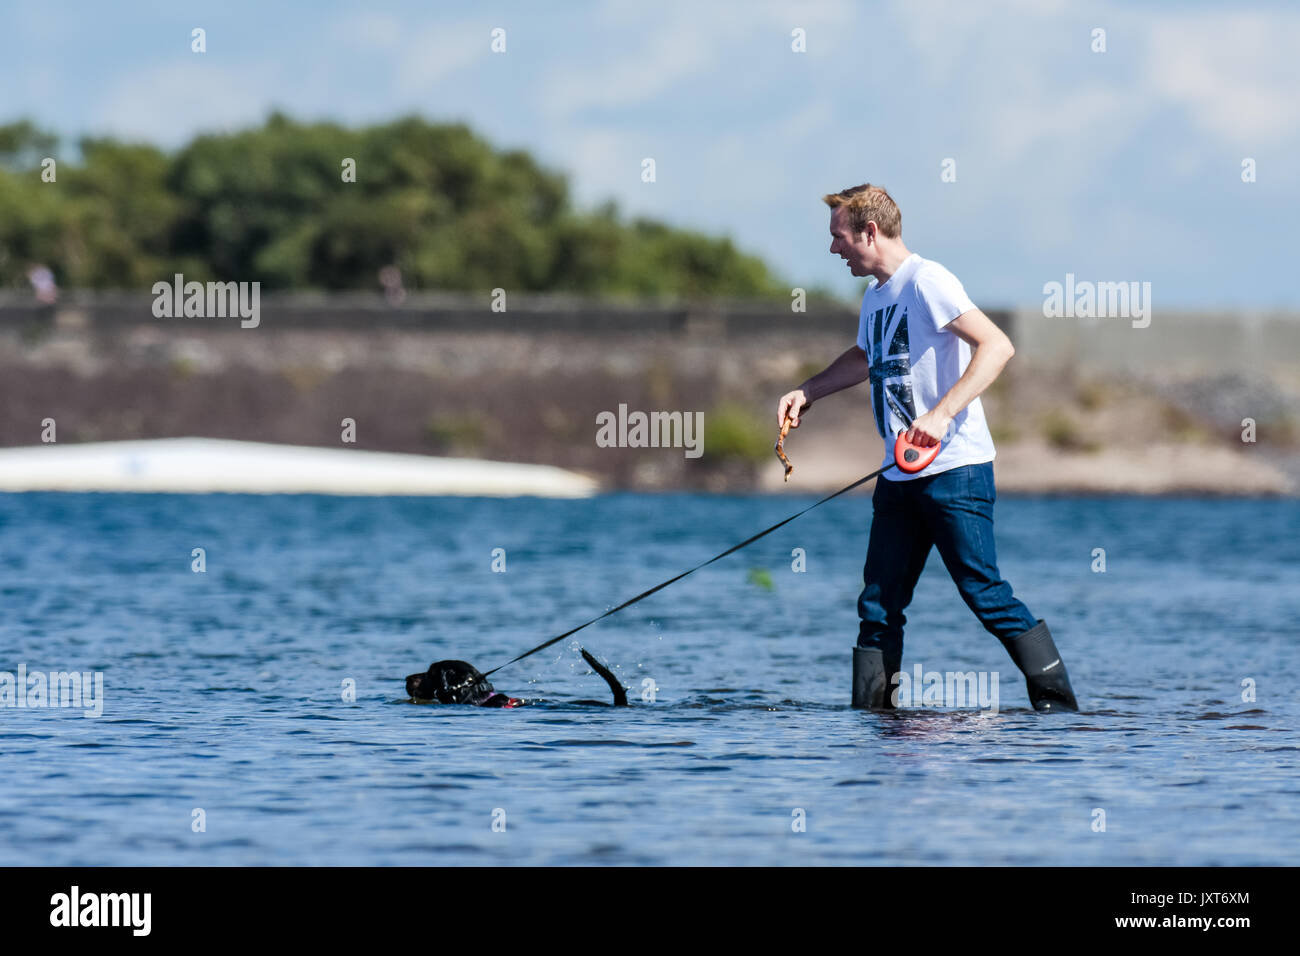 Chasewater Country Park, Burntwood, UK. 17th Aug, 2017. UK Weather. A wet start to the day gave way to glorious summer sunshine in the afternoon which saw people taking full advantage at Chasewater Country Park, Staffordshire. Credit: Daniel James Armishaw/Alamy Live News - Stock Image